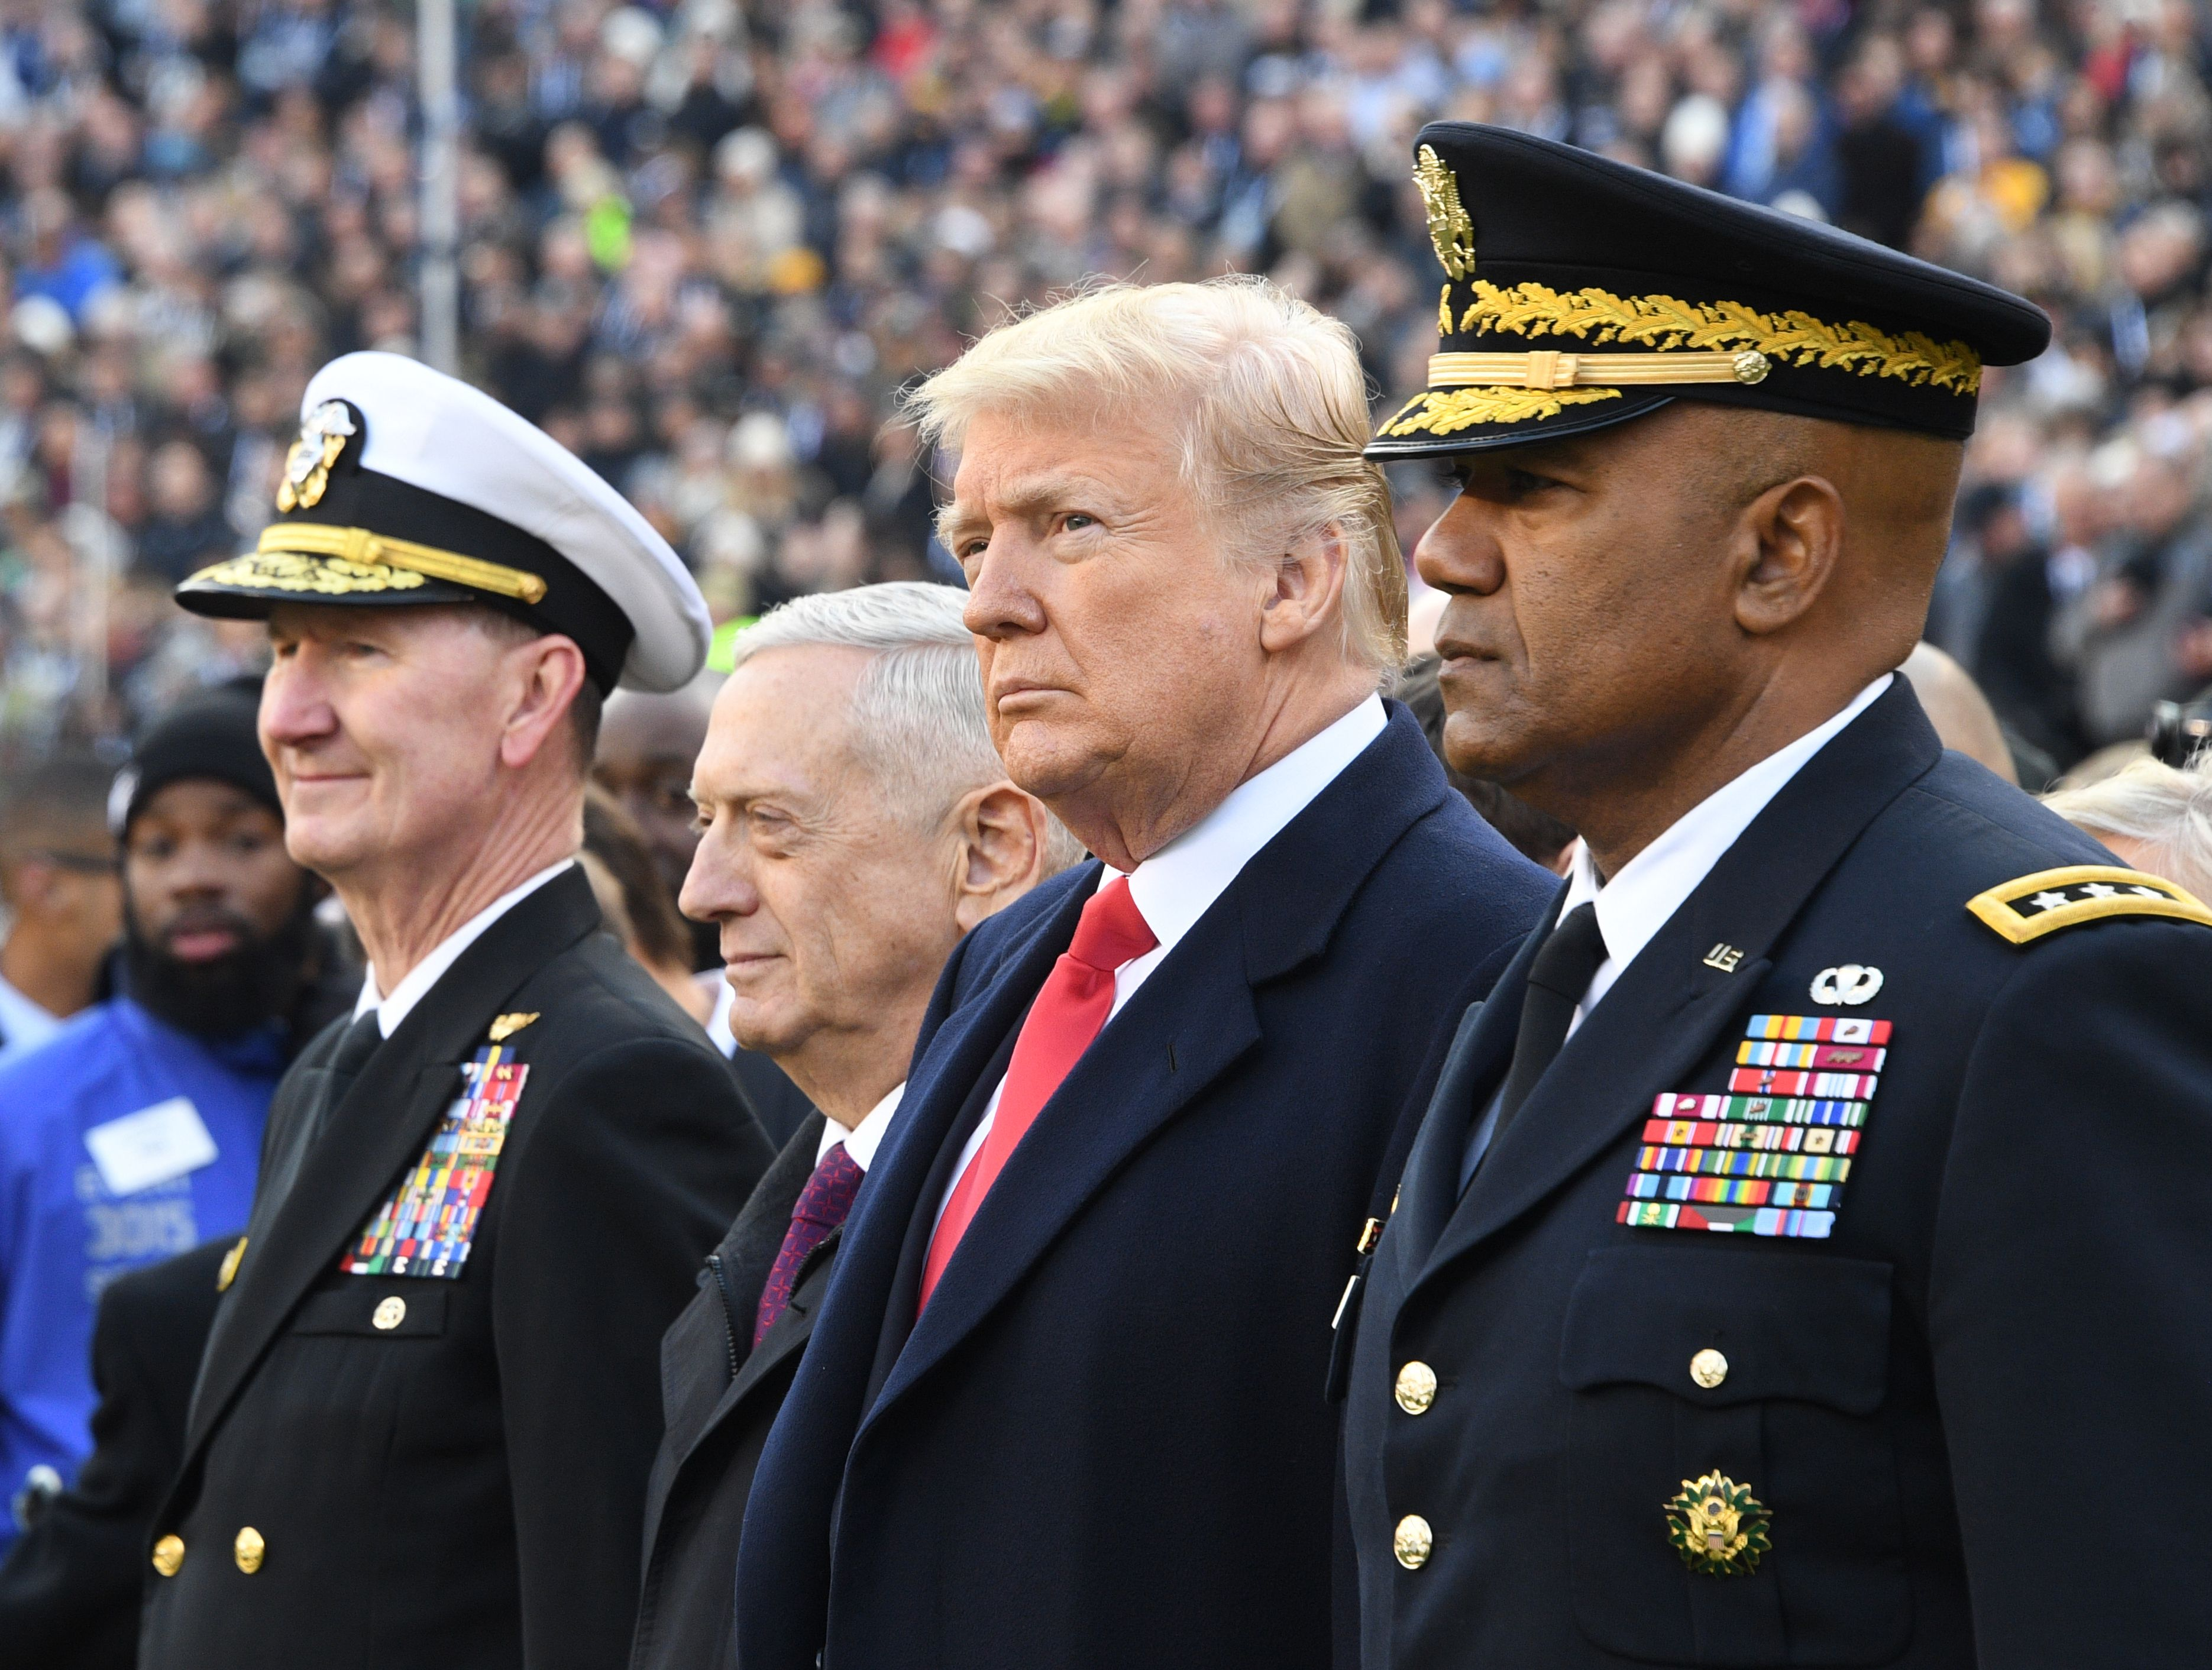 Army-Navy Game's Stunning National Anthem Rendition Puts Every Kneeling NFL Player To Shame